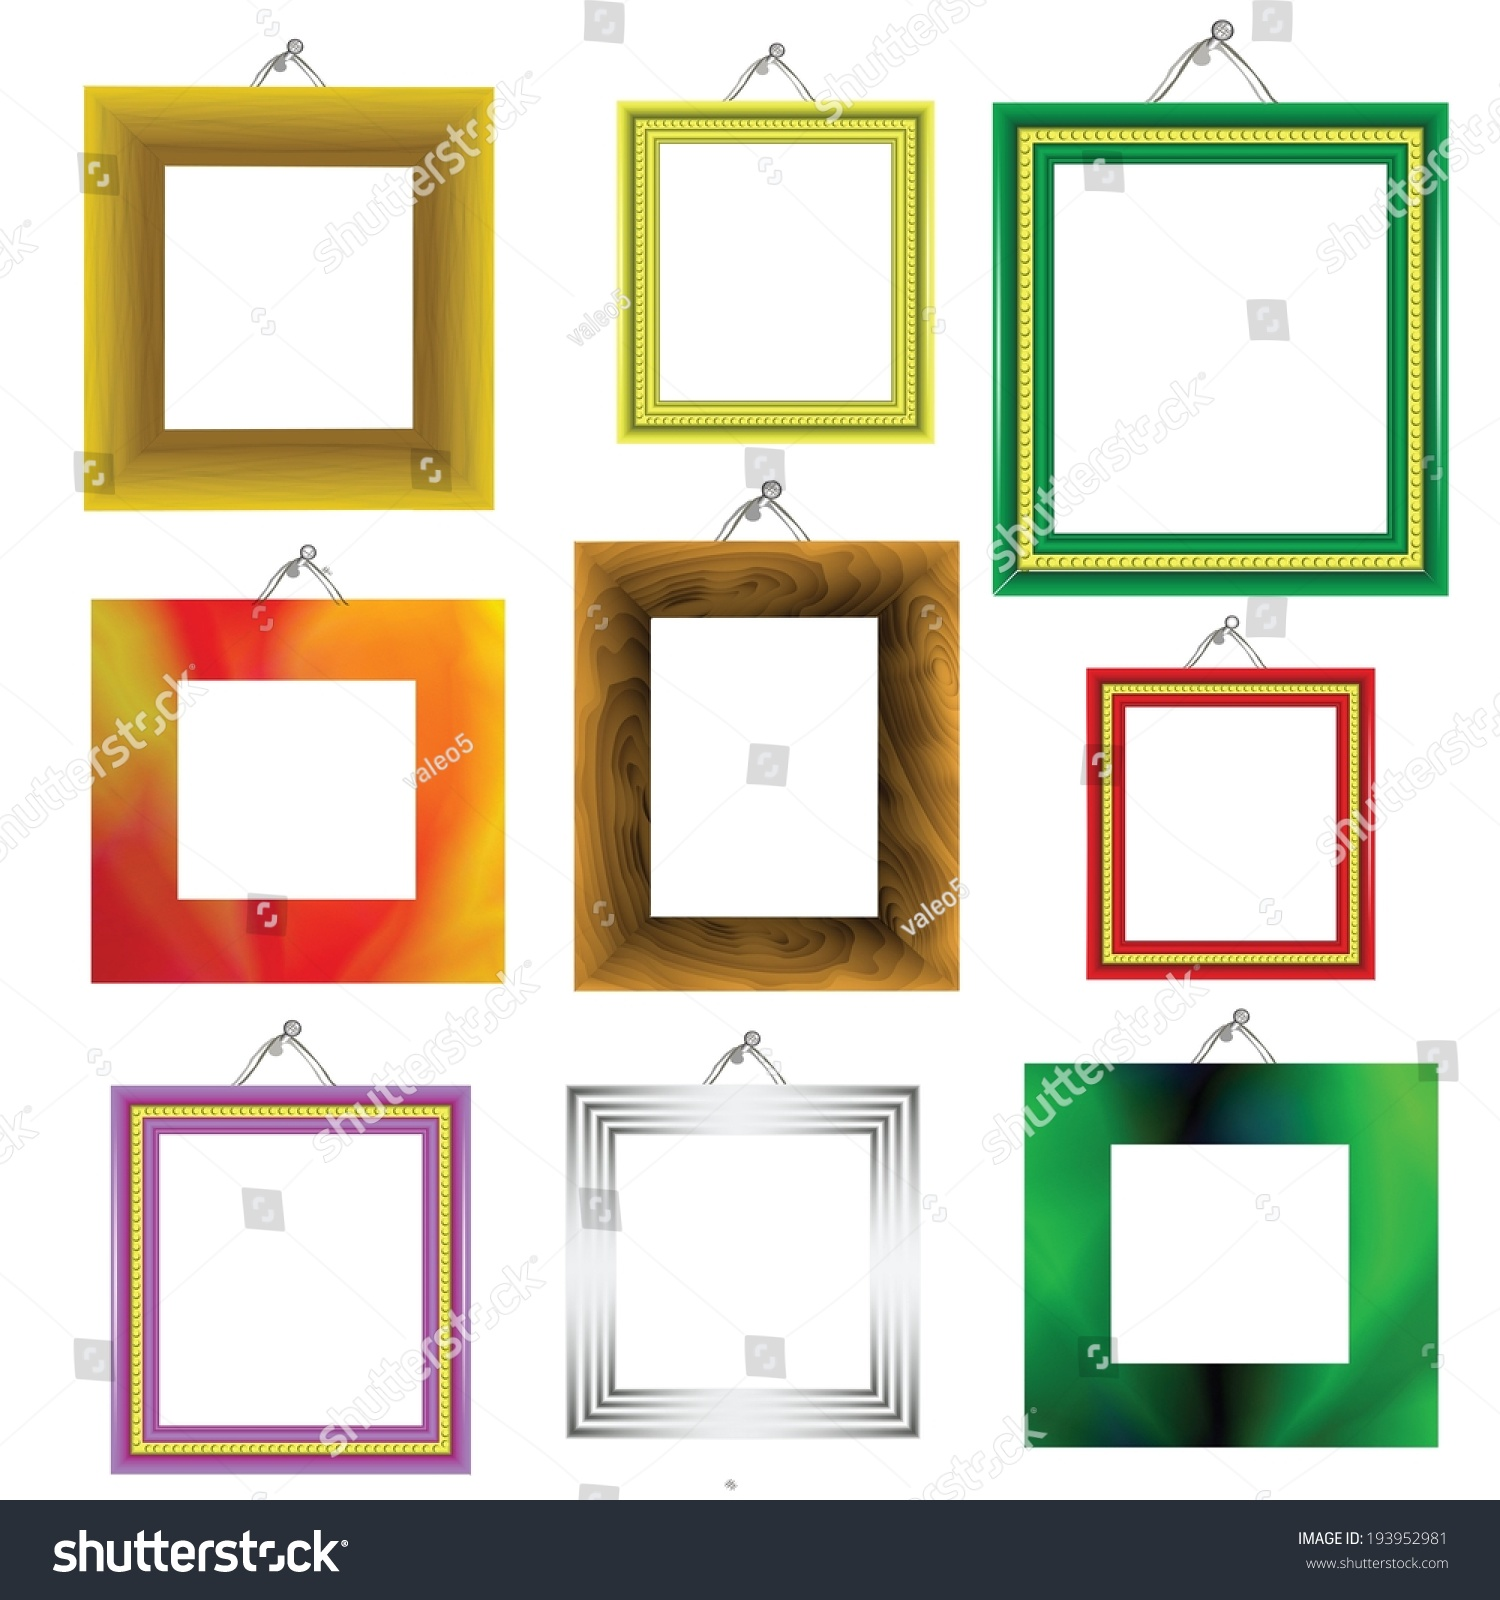 Vector Illustration Different Frames On White Stock Vector (Royalty ...